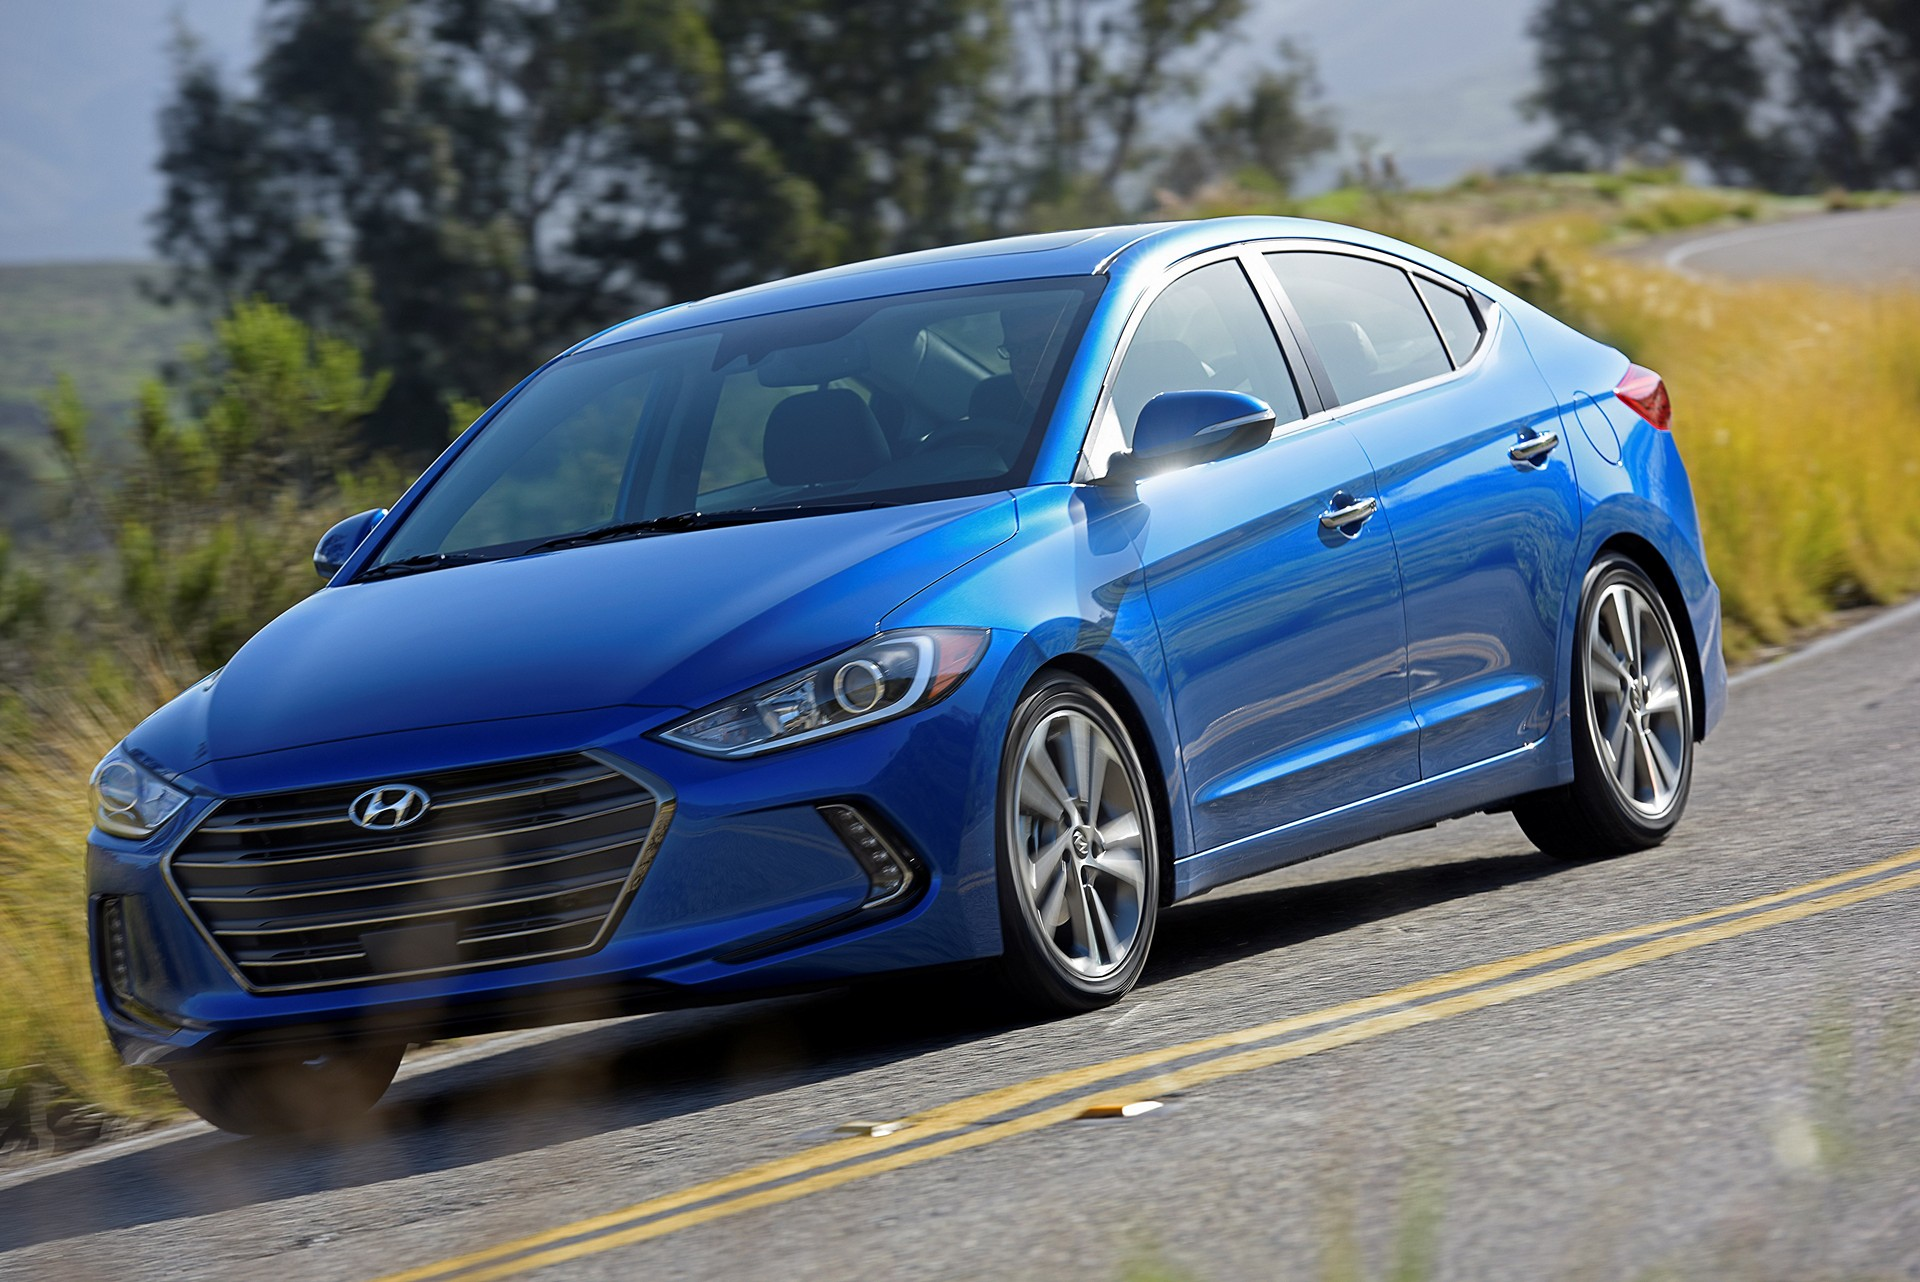 the motoring world usa the hyundai elantra has been named as a winner in the inaugural. Black Bedroom Furniture Sets. Home Design Ideas